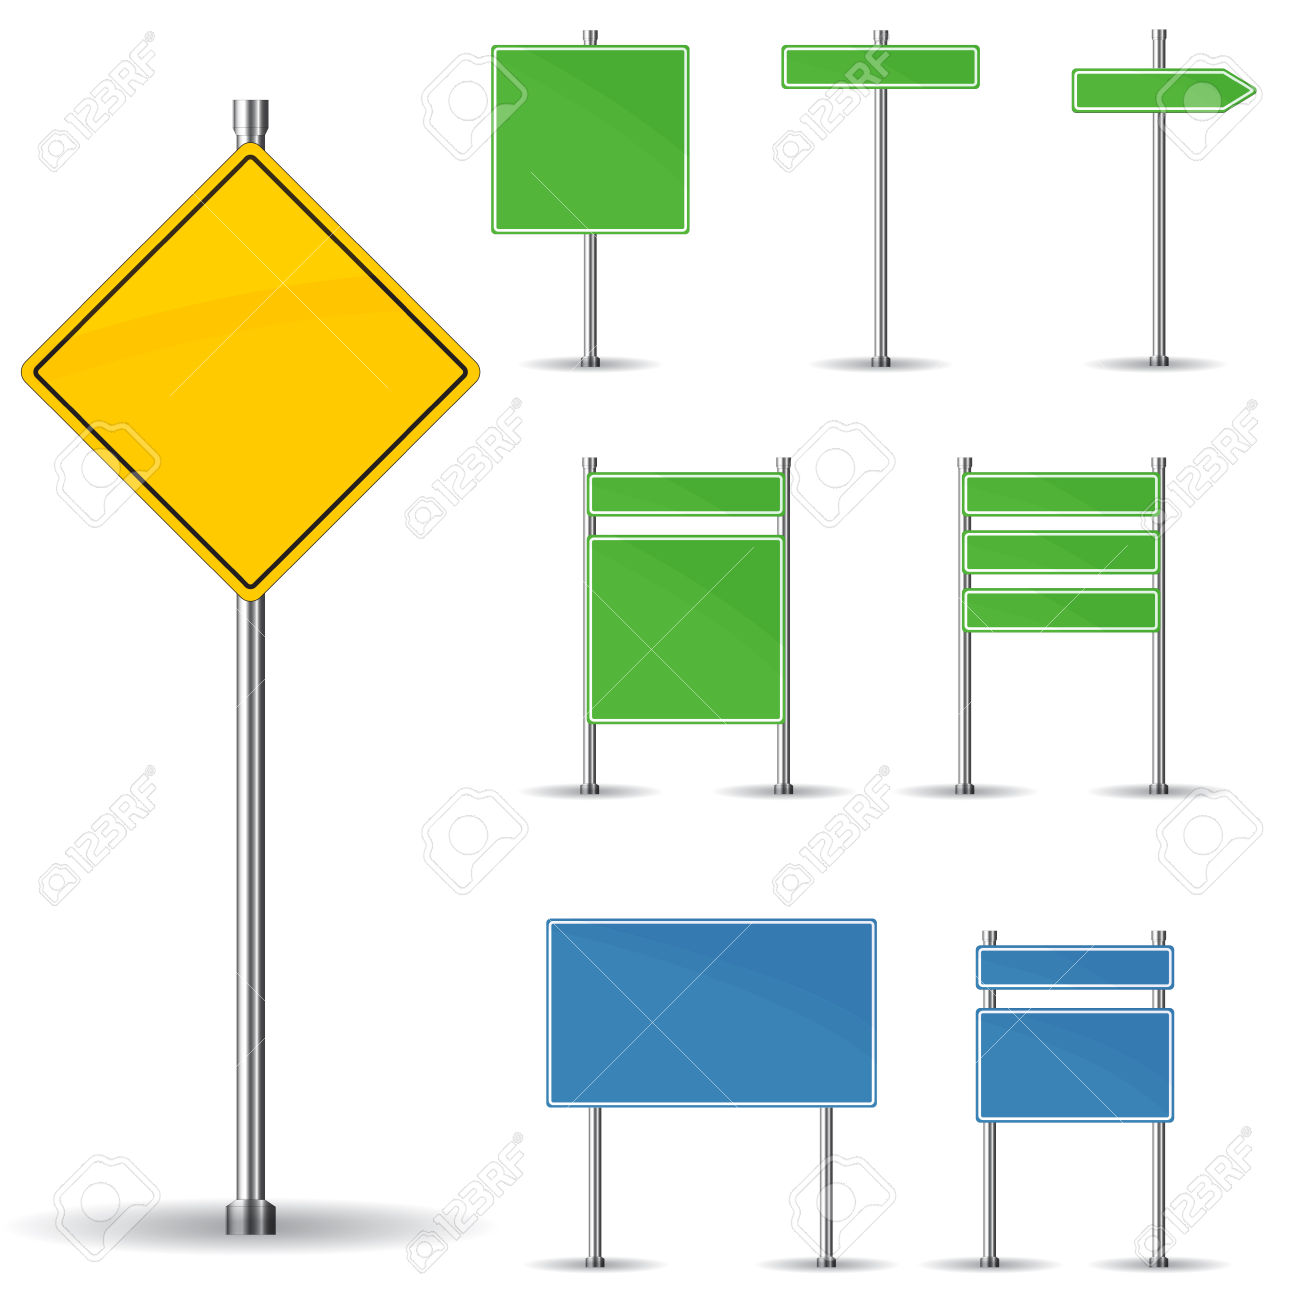 Road sign arrow clipart svg library stock Blank Road Signs Board And Arrow Vector Royalty Free Cliparts ... svg library stock